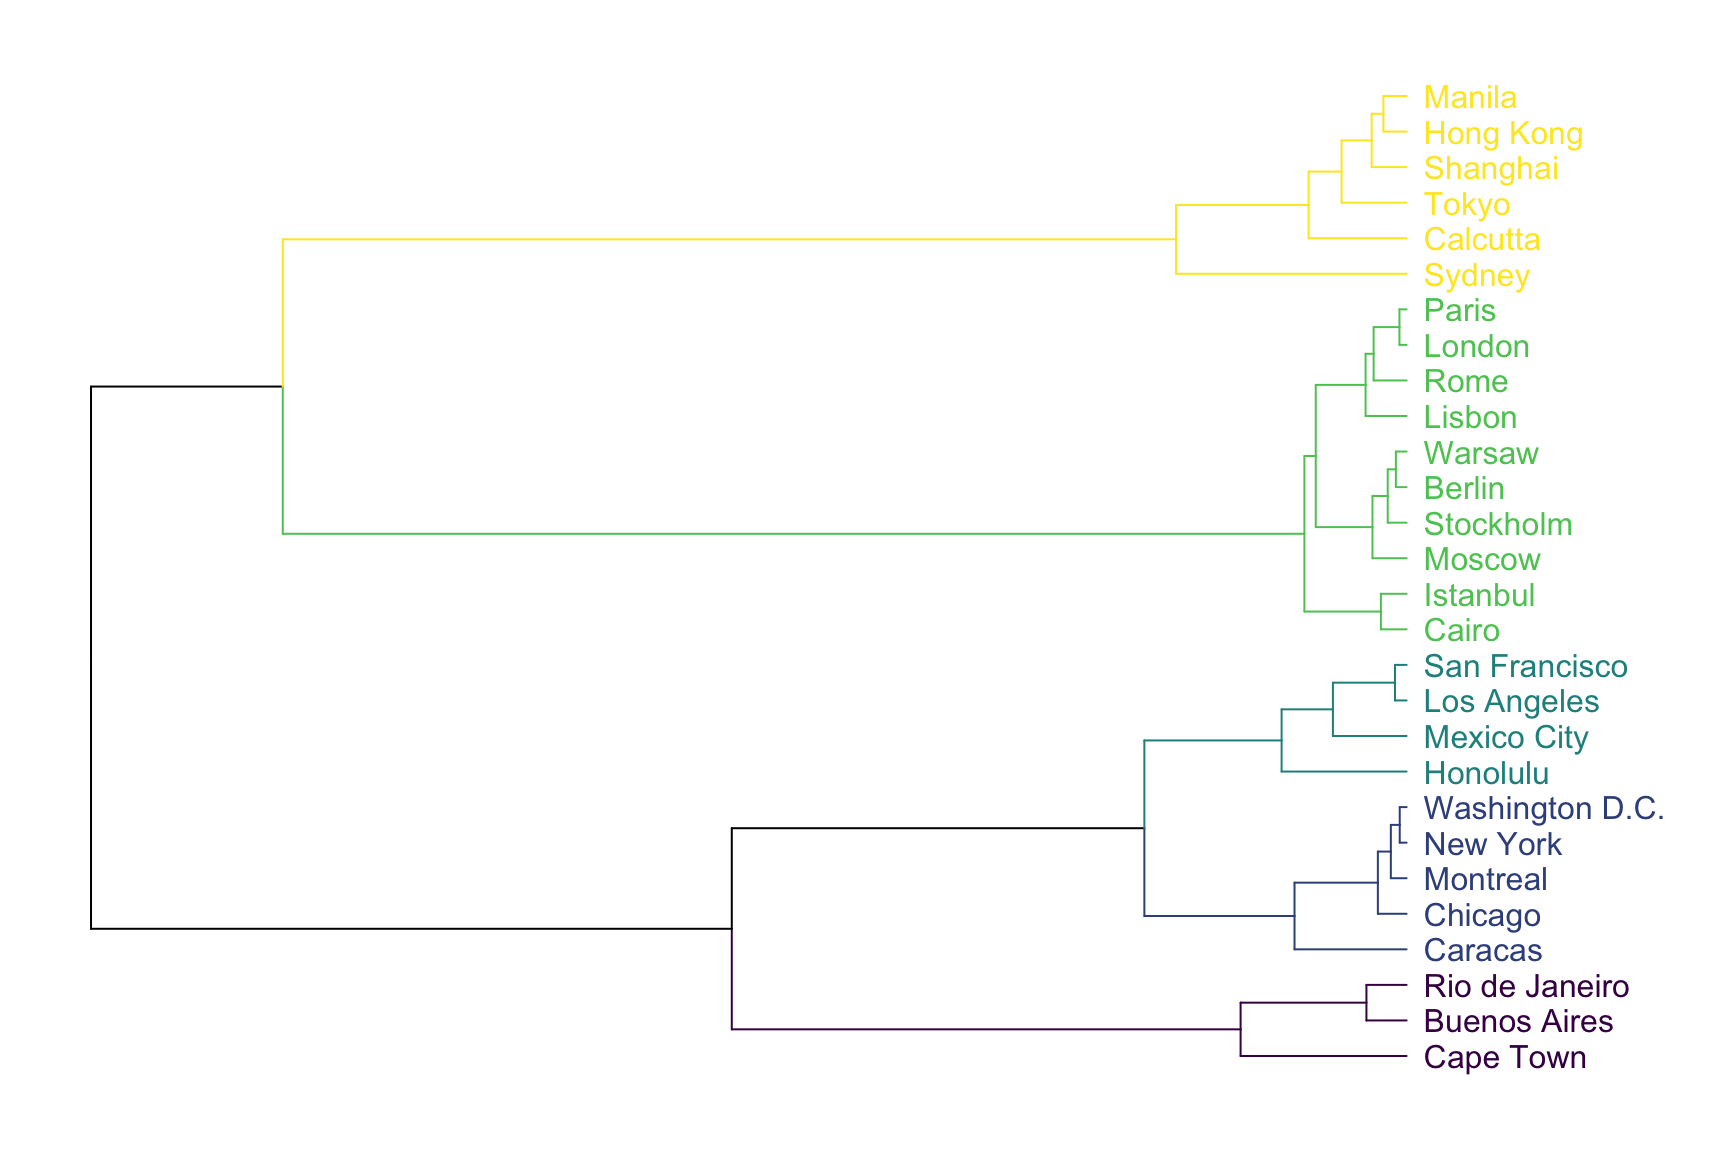 Dendrogram – from Data to Viz